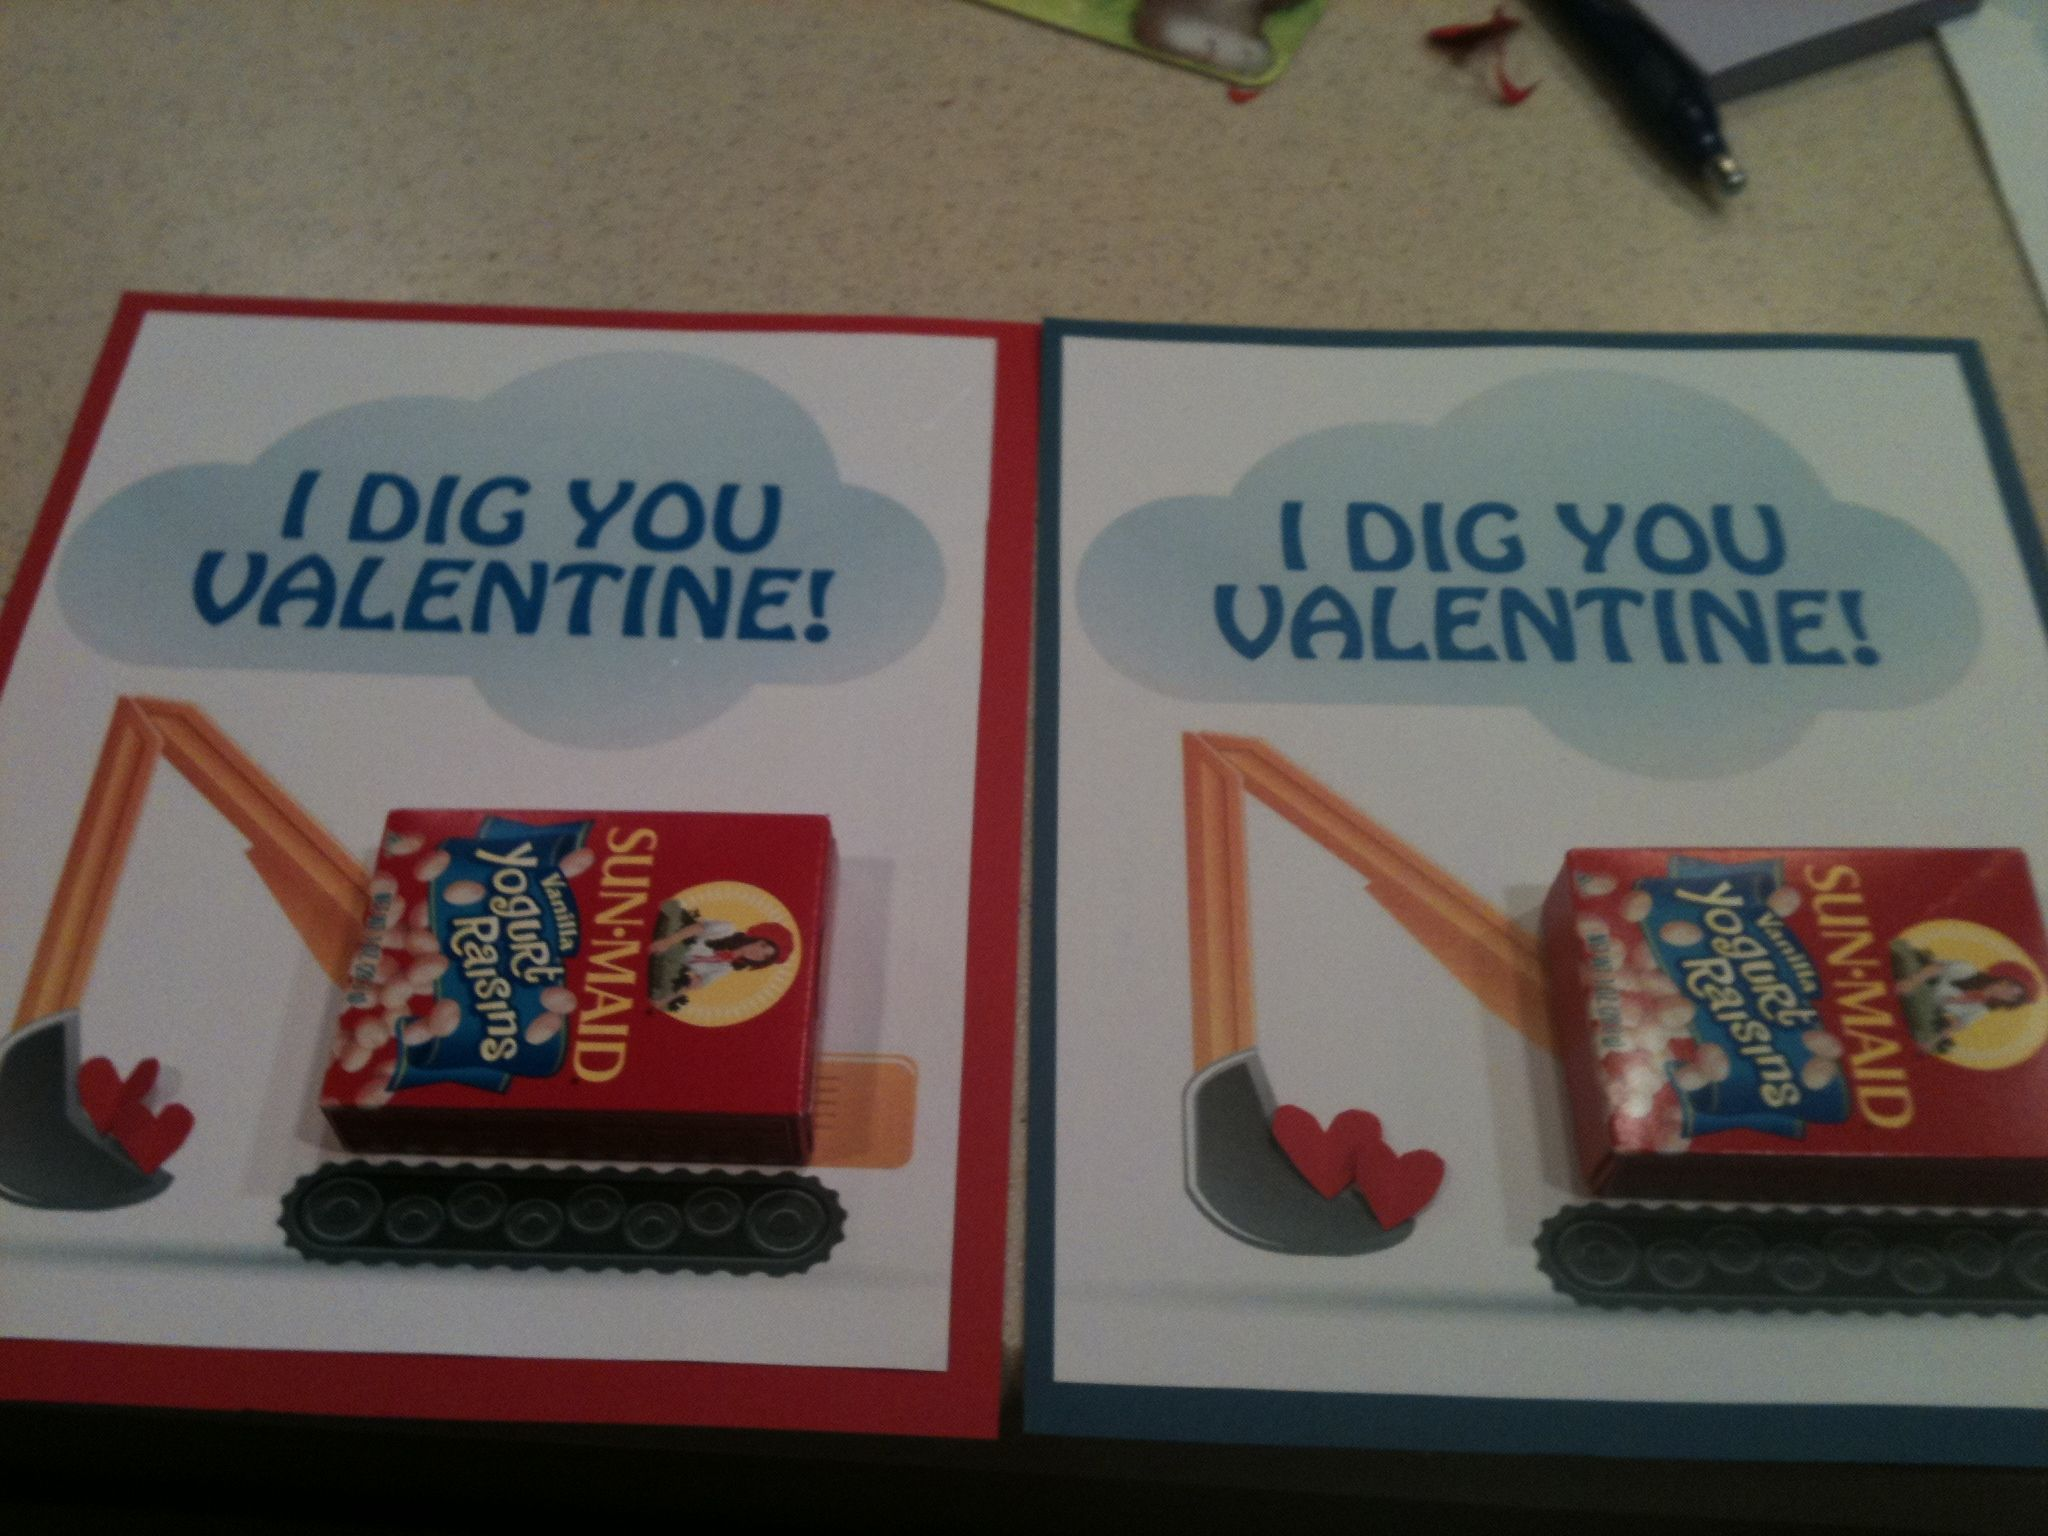 Construction Valentines 2 year old boys of the world rejoice